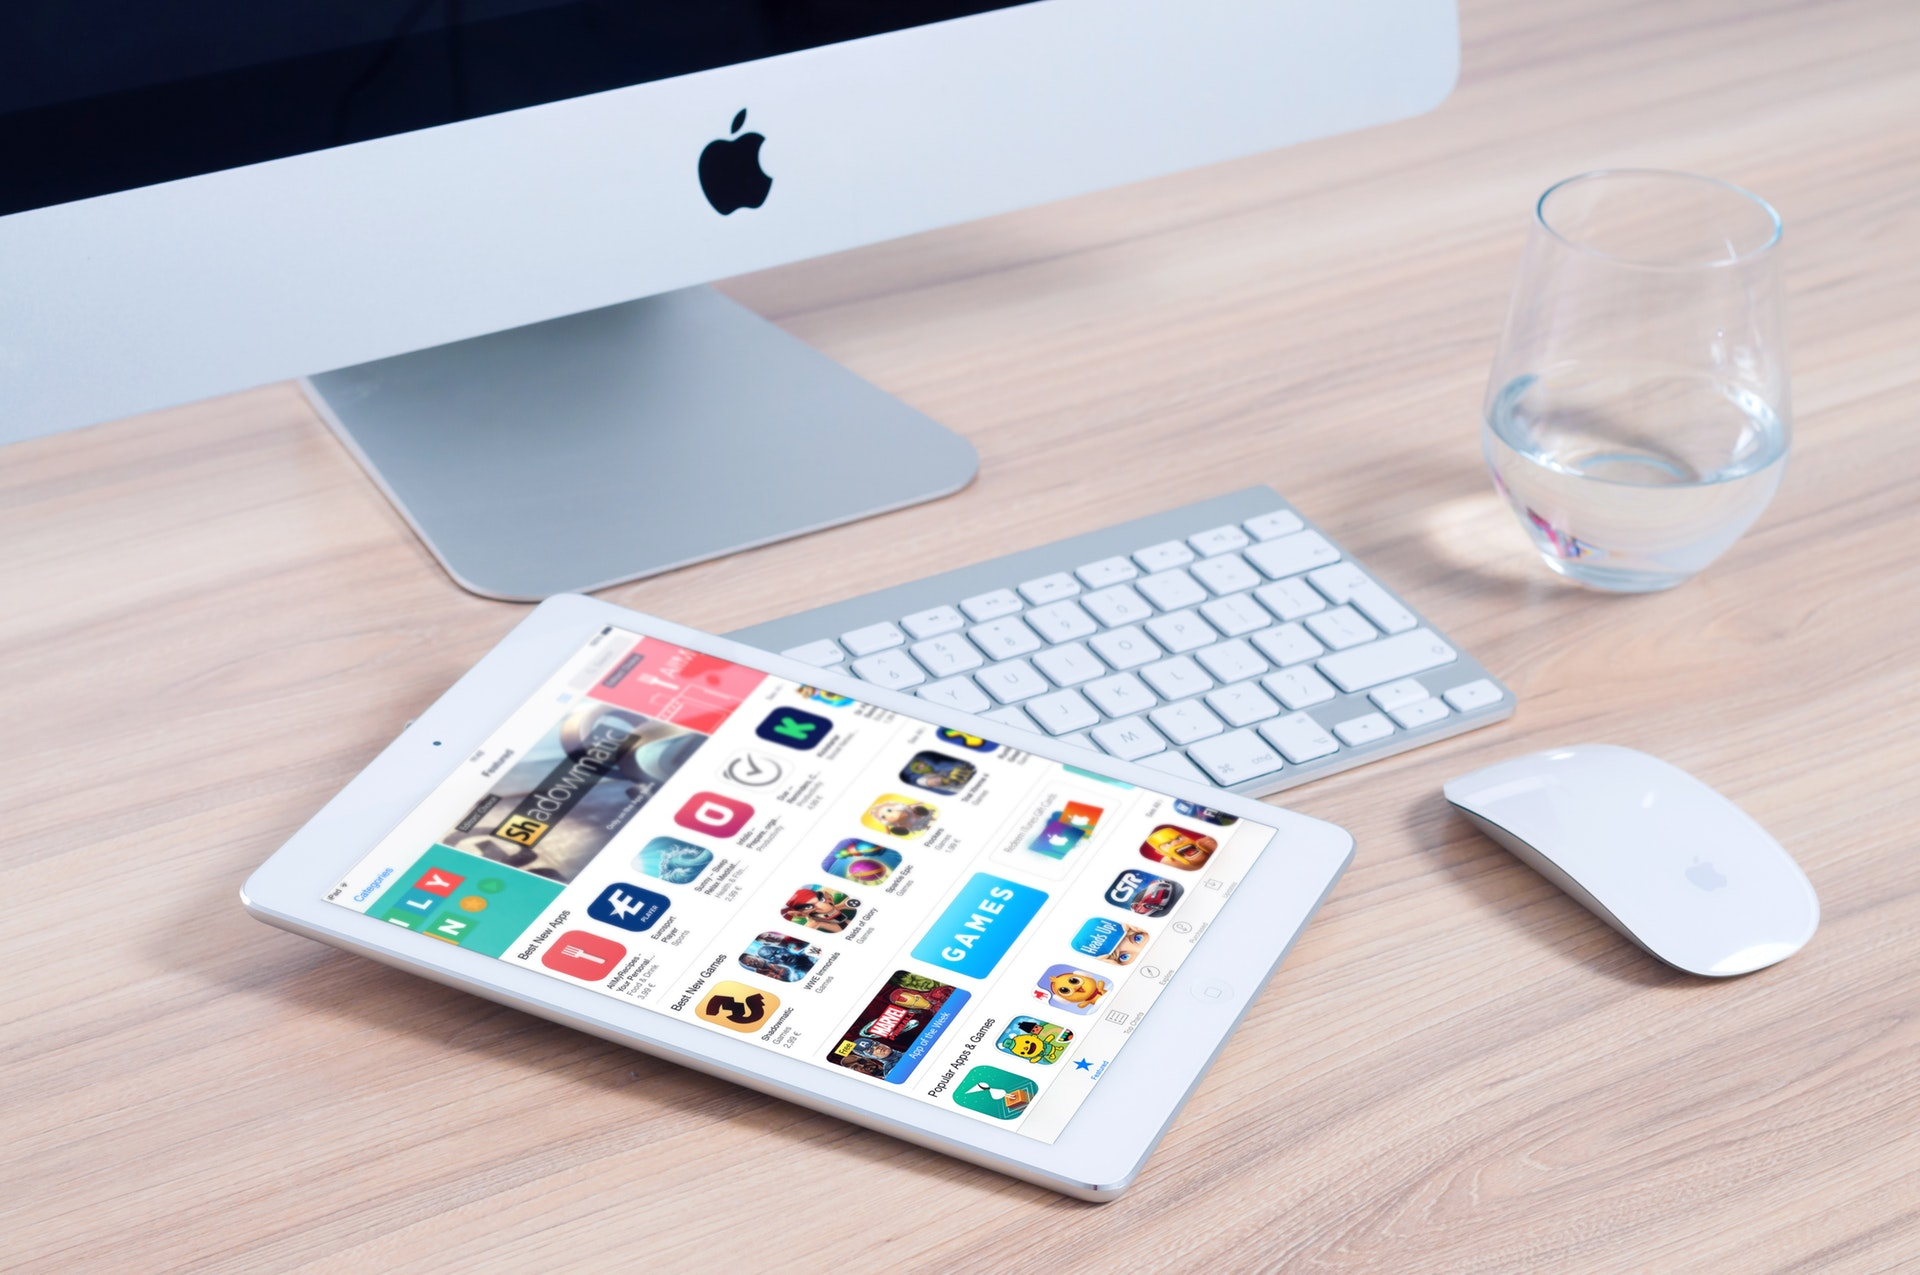 imac-apple-mockup-app-38544.jpeg